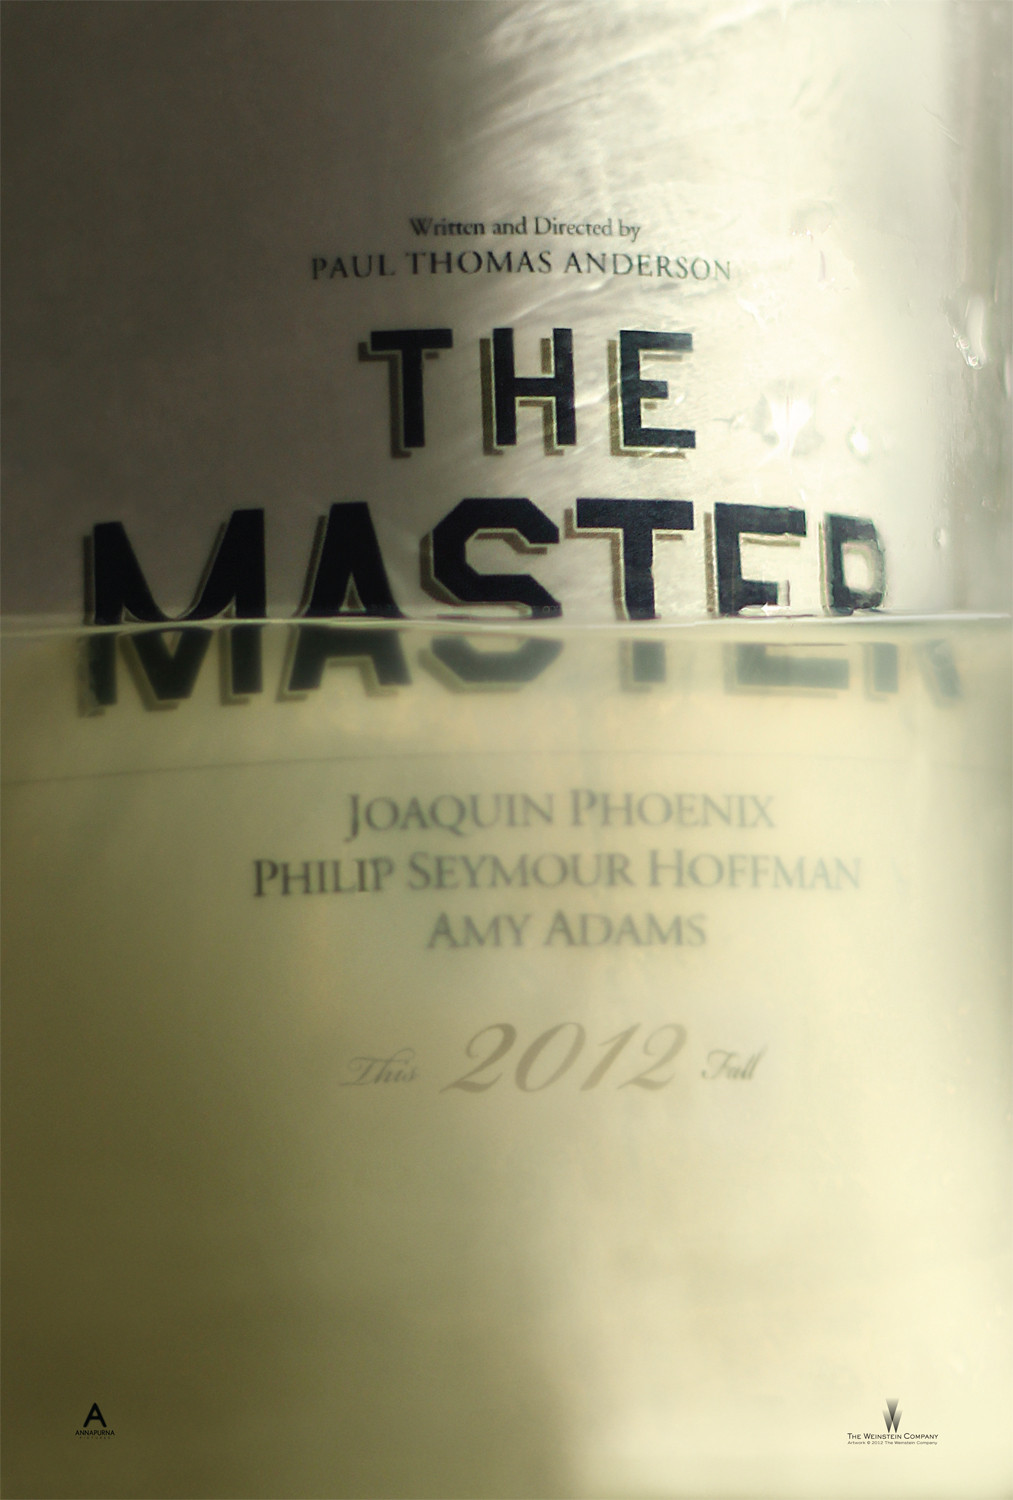 The Master (Theatrical Trailer) is revealed!